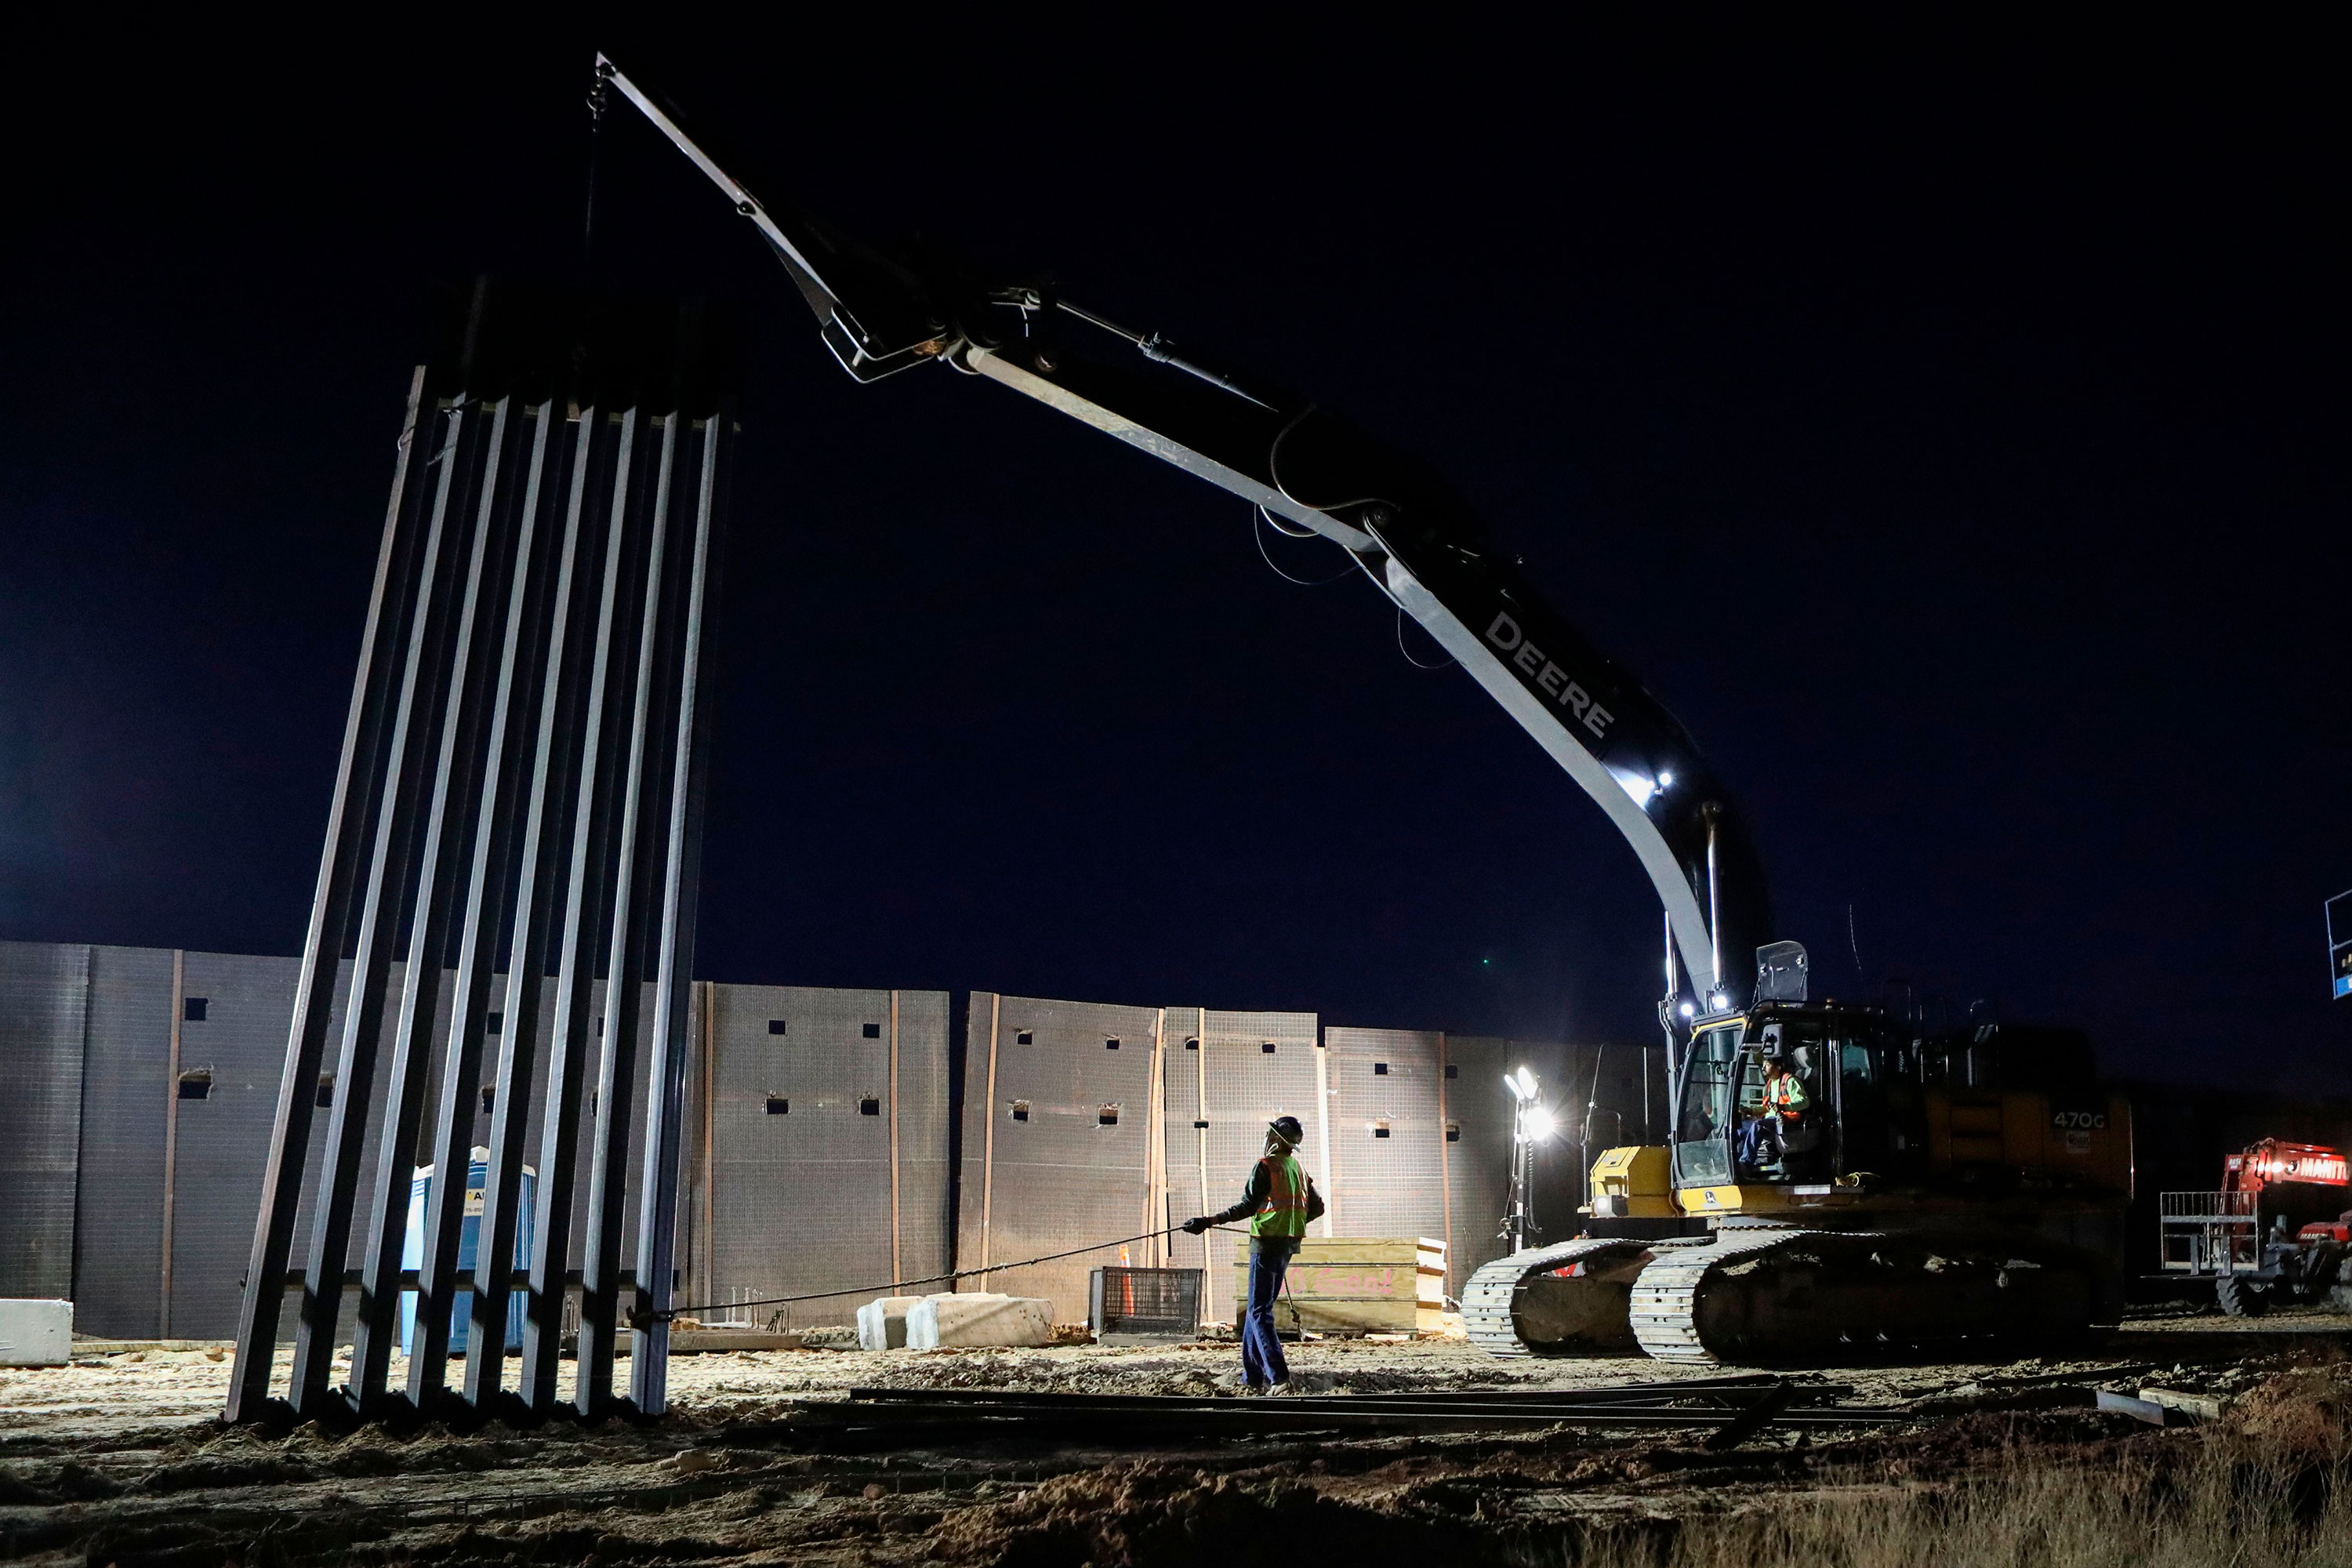 U.S. workers build the new 13-mile border wall construction project in the desert between Sunlad Park, New Mexico, and Ciudad Juarez, Mexico, on January 15.